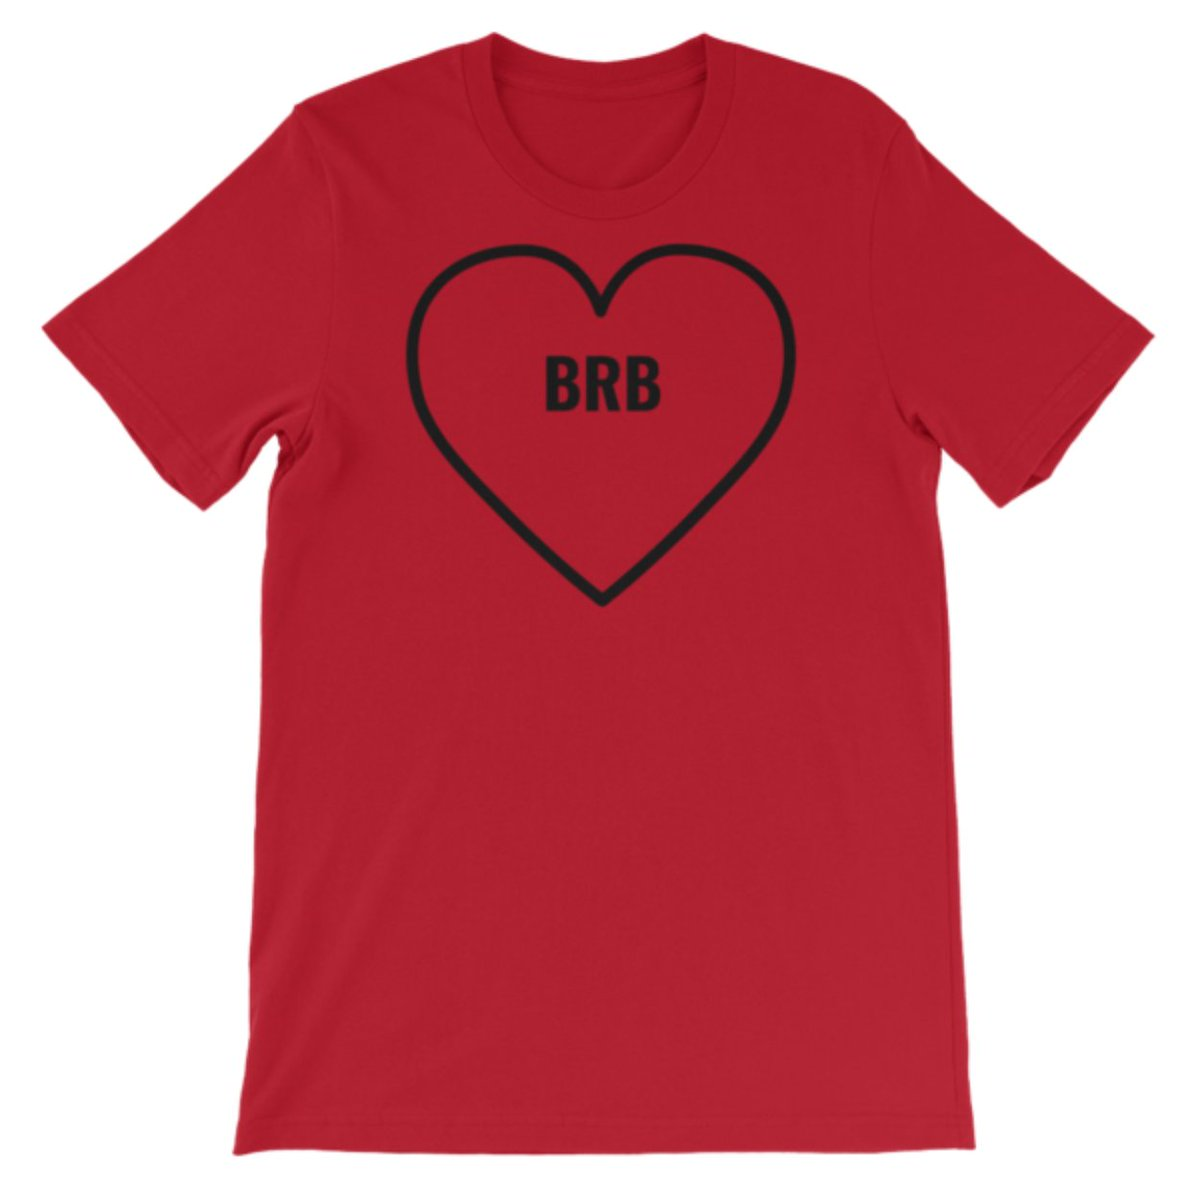 #brb or customize your message https://t.co/NKOzyit0Zx . #excuseme or customize your message https://t.co/mLOGan4LLN . . #allographictees #candyhearts #ValentinesDay #ValentinesDayGift #ValentinesDayGifts #gift #giftidea #giftideas #valentine #bemyvalentine #conversationstarter https://t.co/F3pq7SKo9o